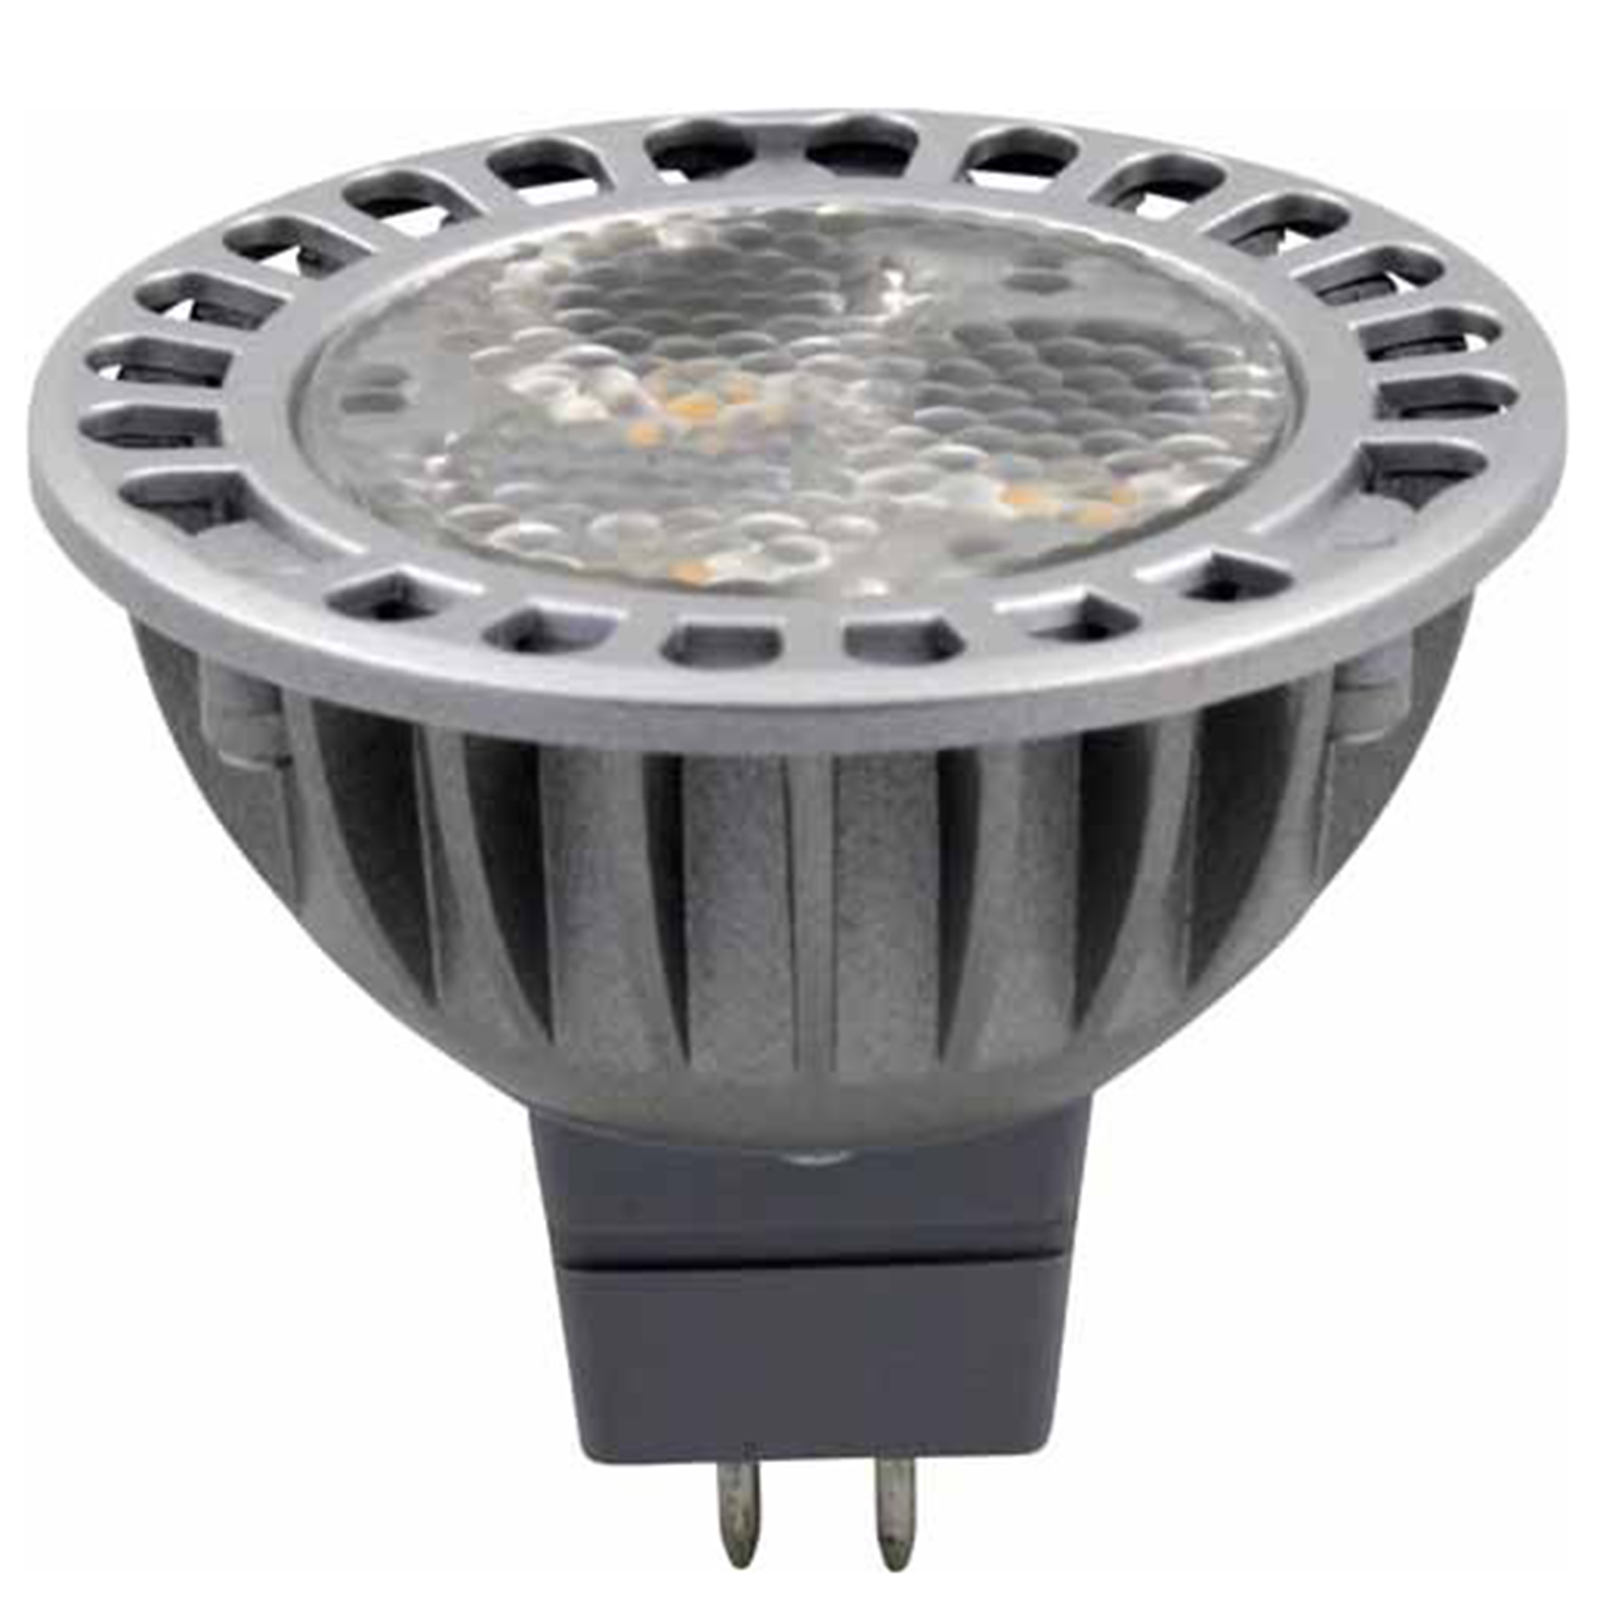 Fusion Lamps 3000k Mr16 High Efficiency Long Life 4w Led